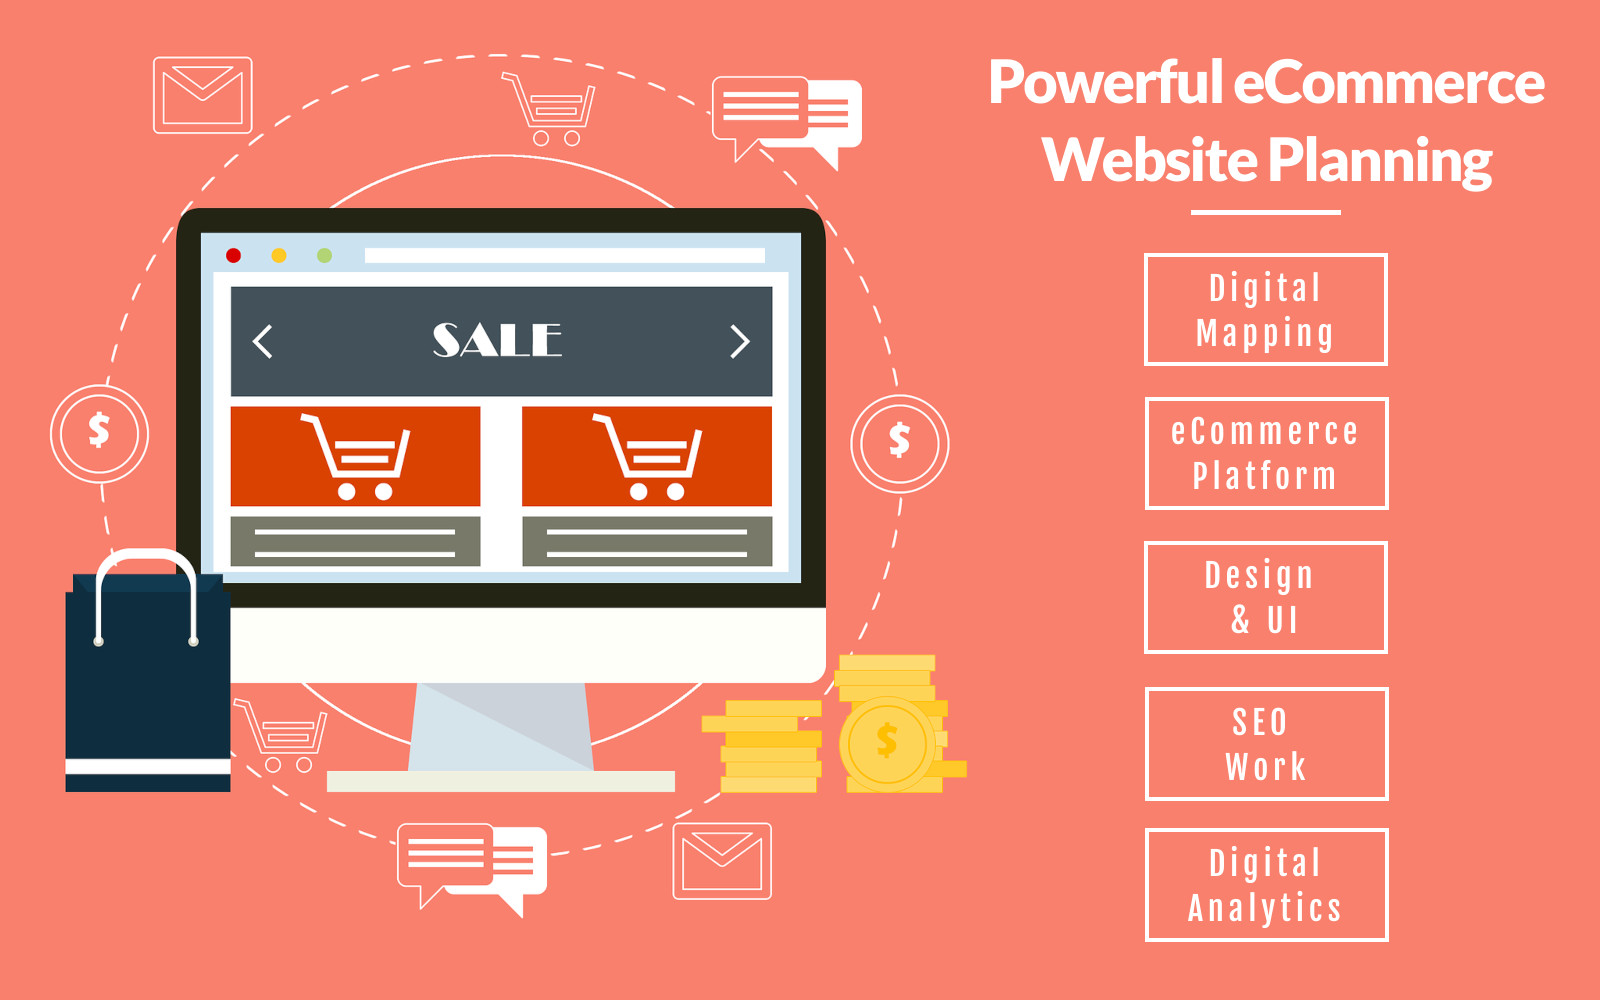 eCommerce Website Design Planning